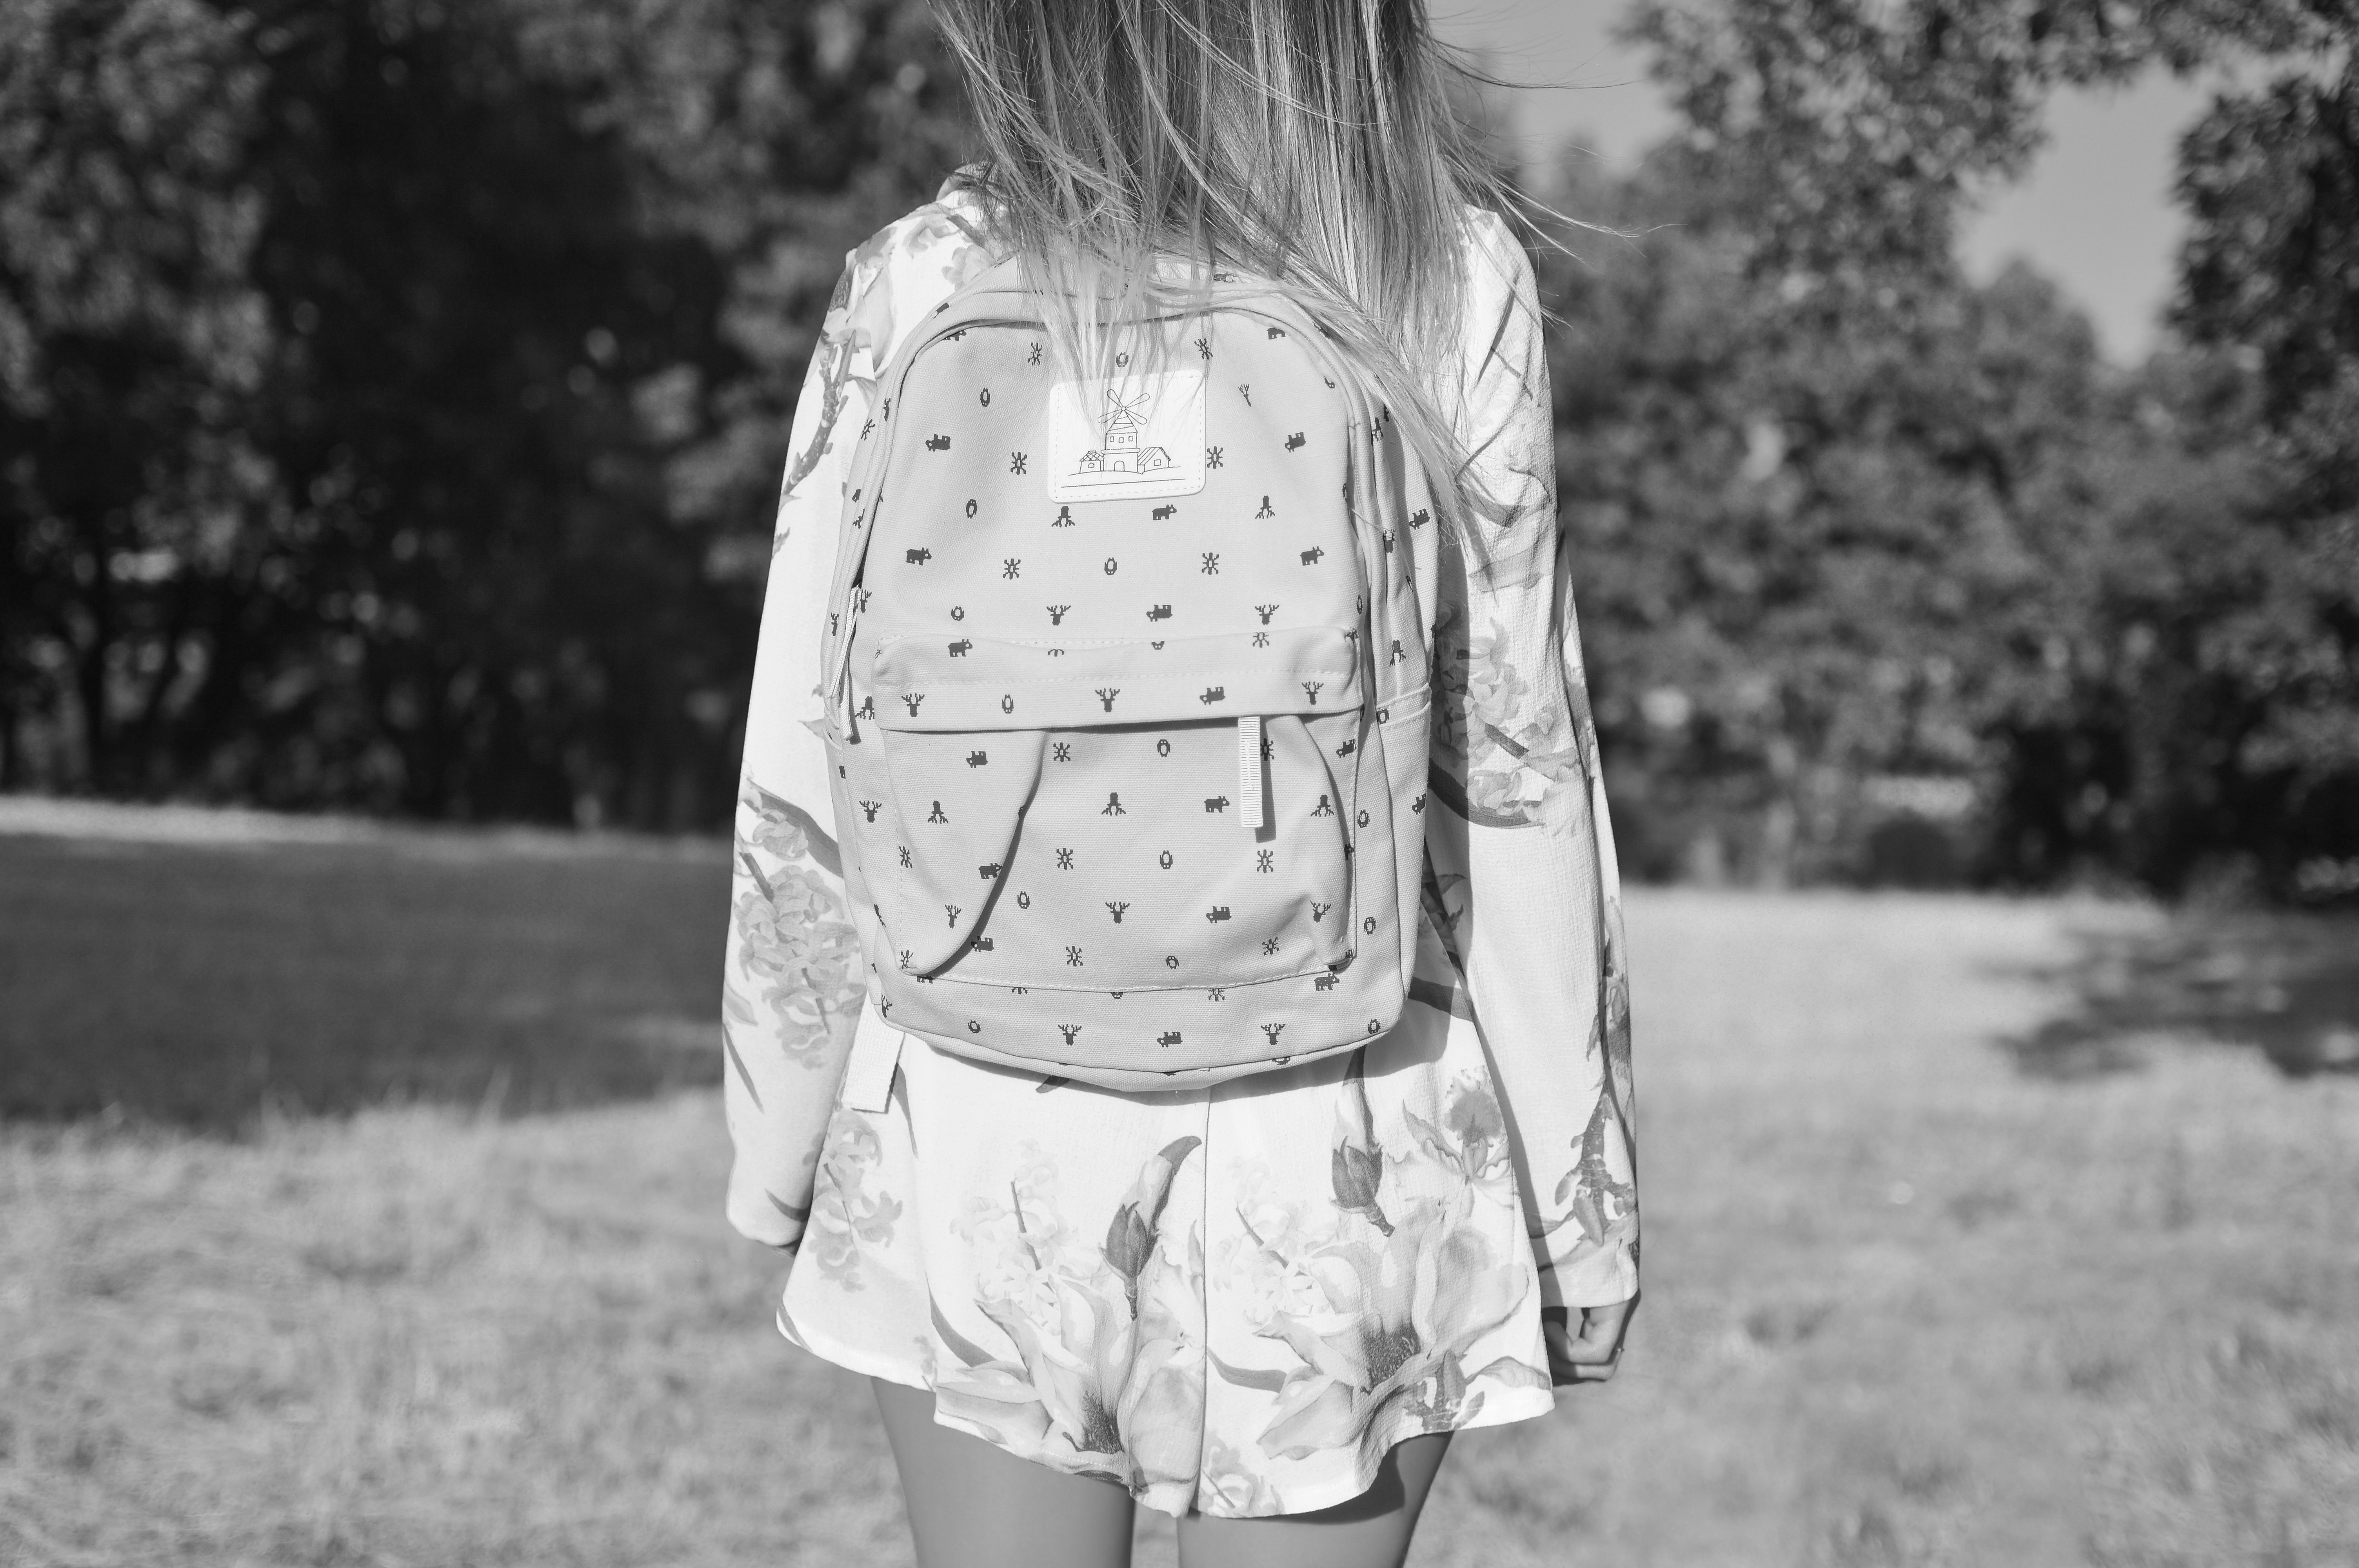 person walking in field with trees wearing dress and backpack